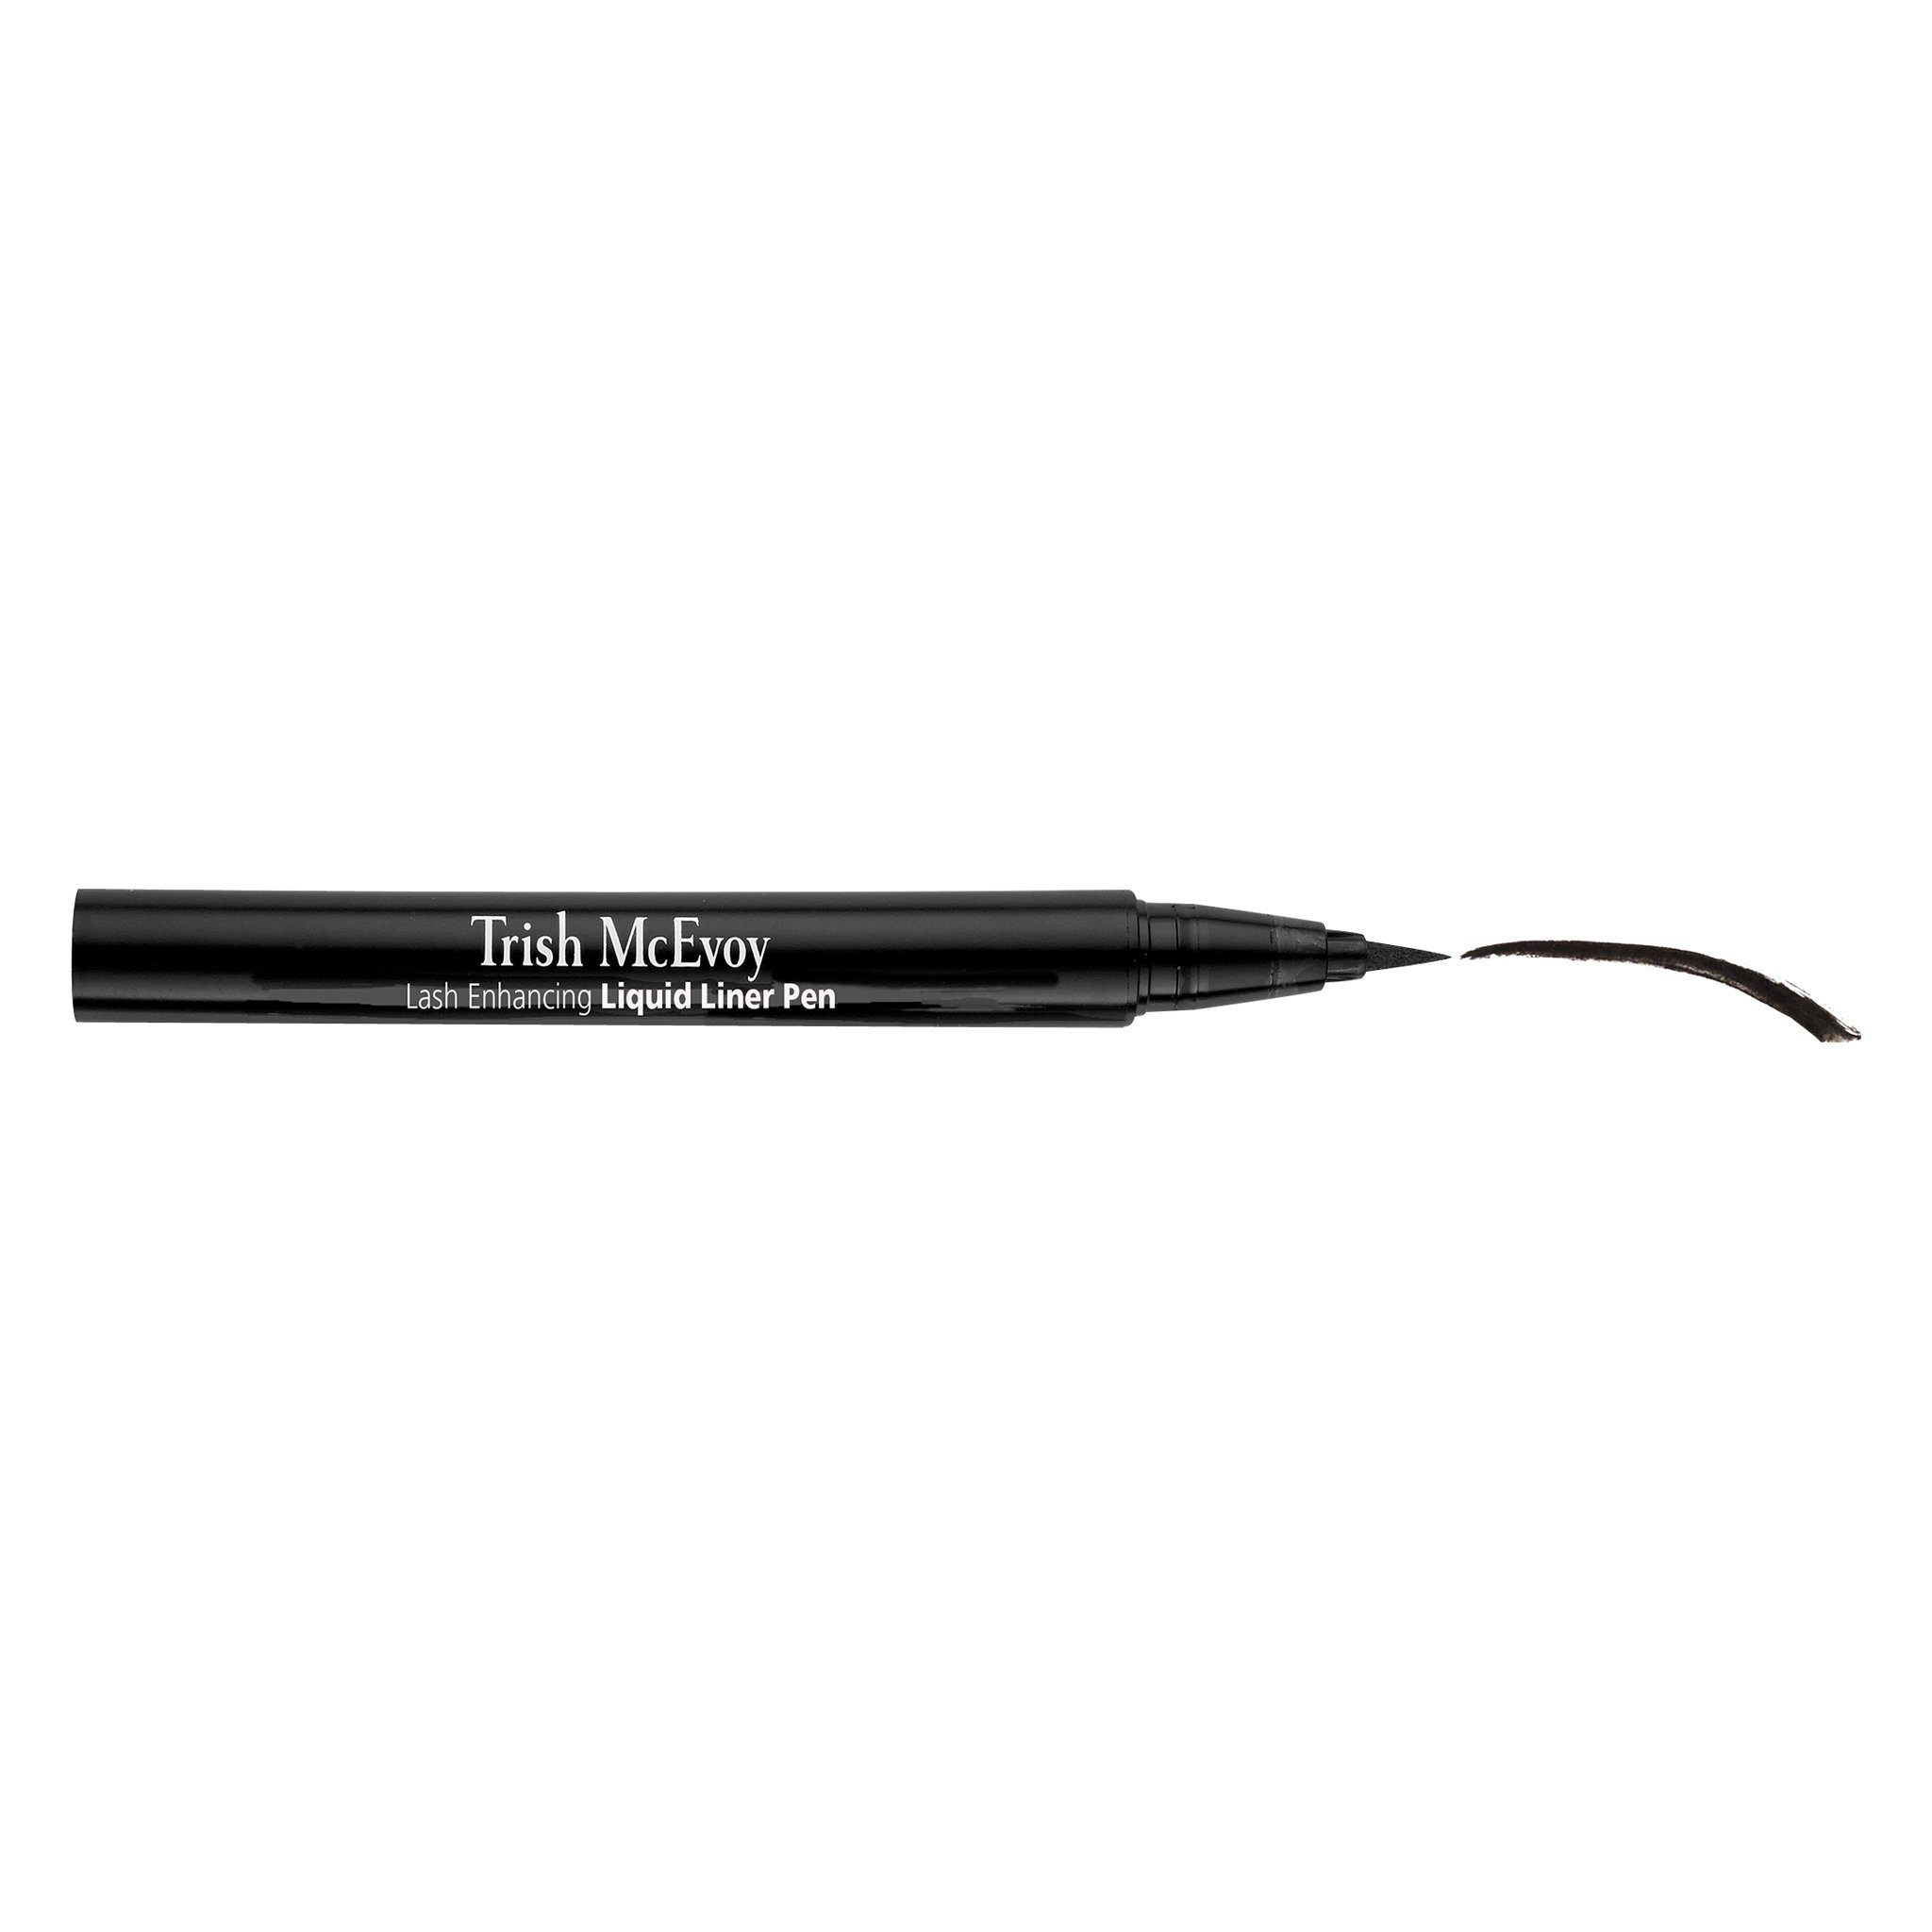 Trish McEvoy Lash Enhancing Liquid Liner Pen 0.02oz (0.6ml)